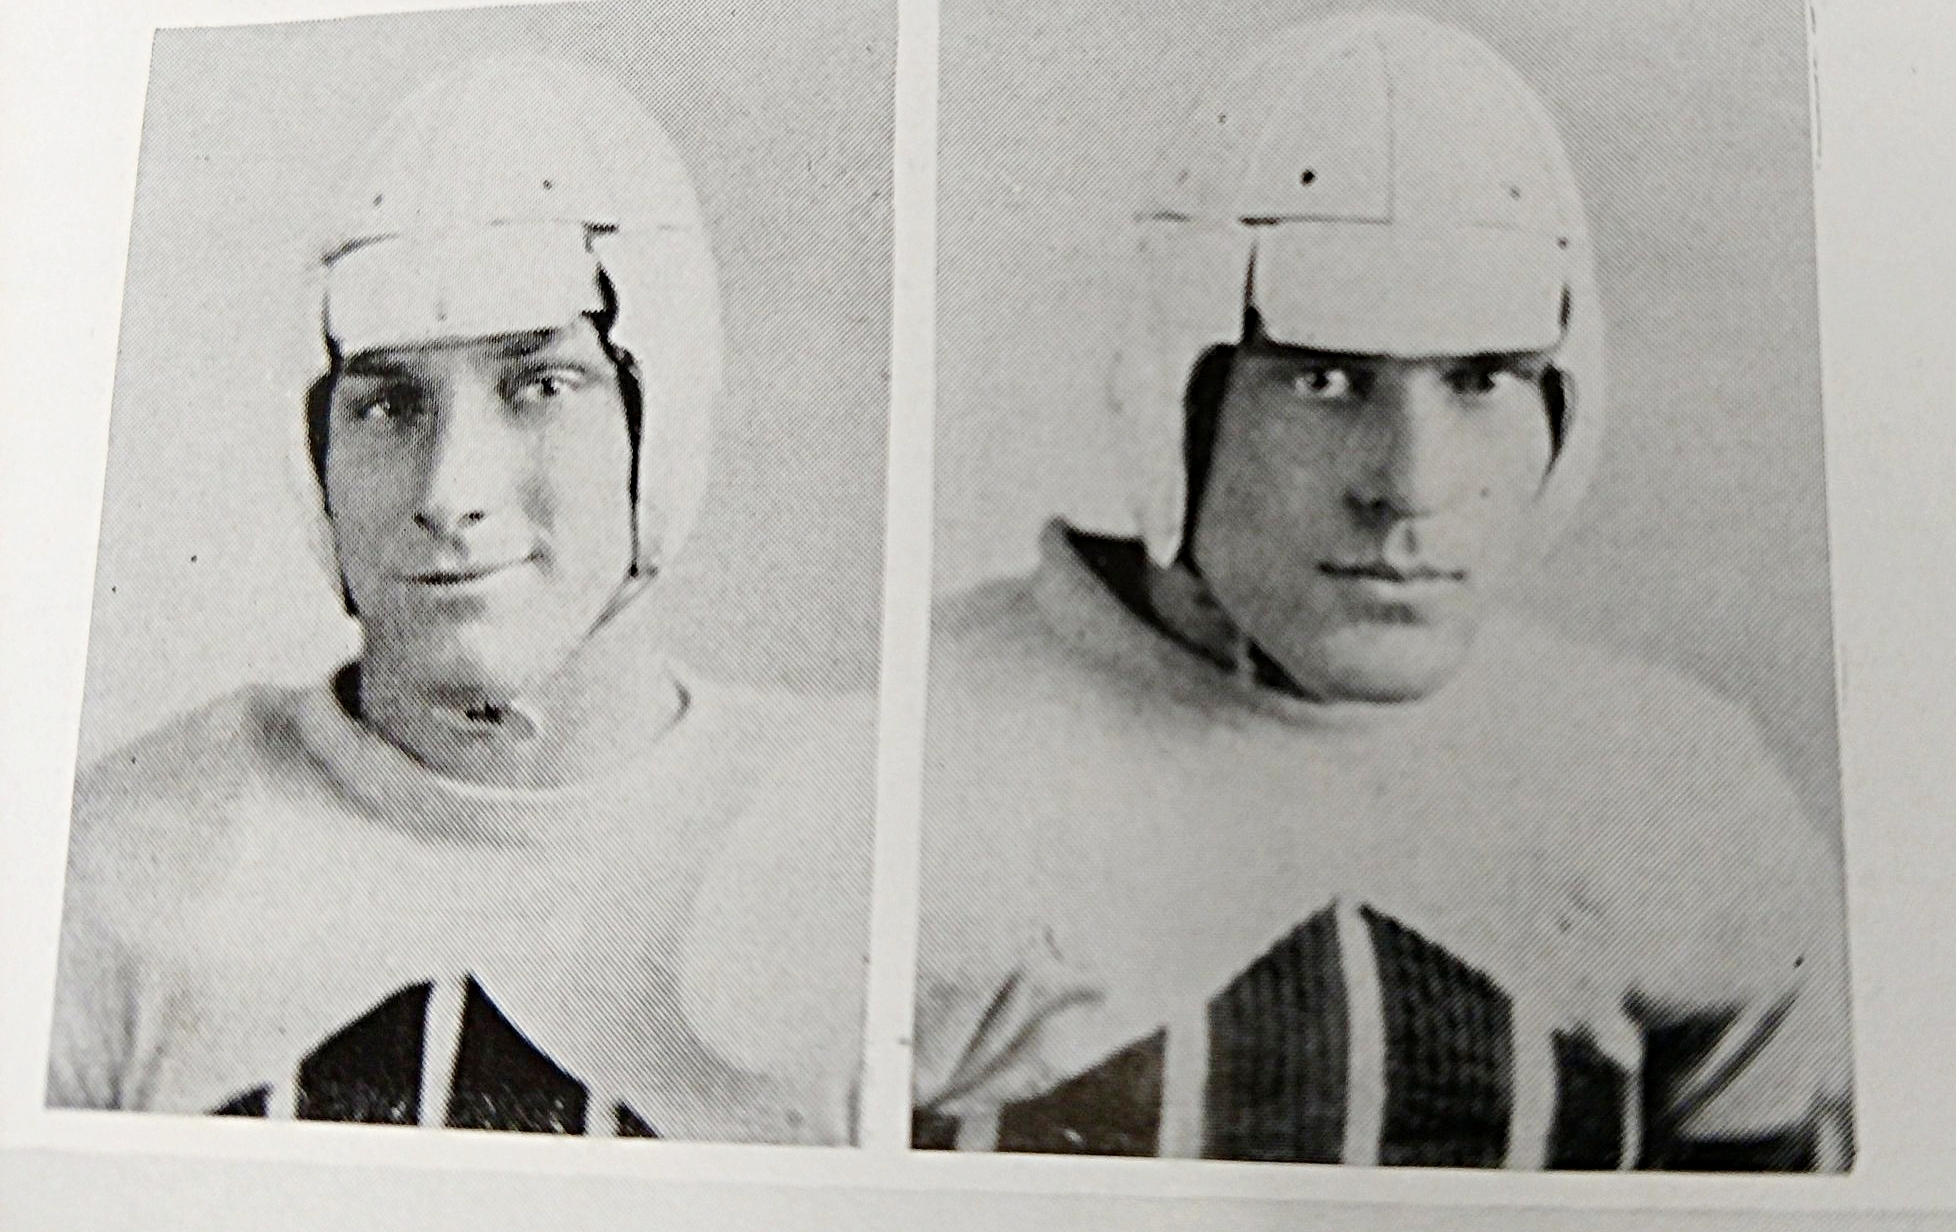 Helmets from the '30's